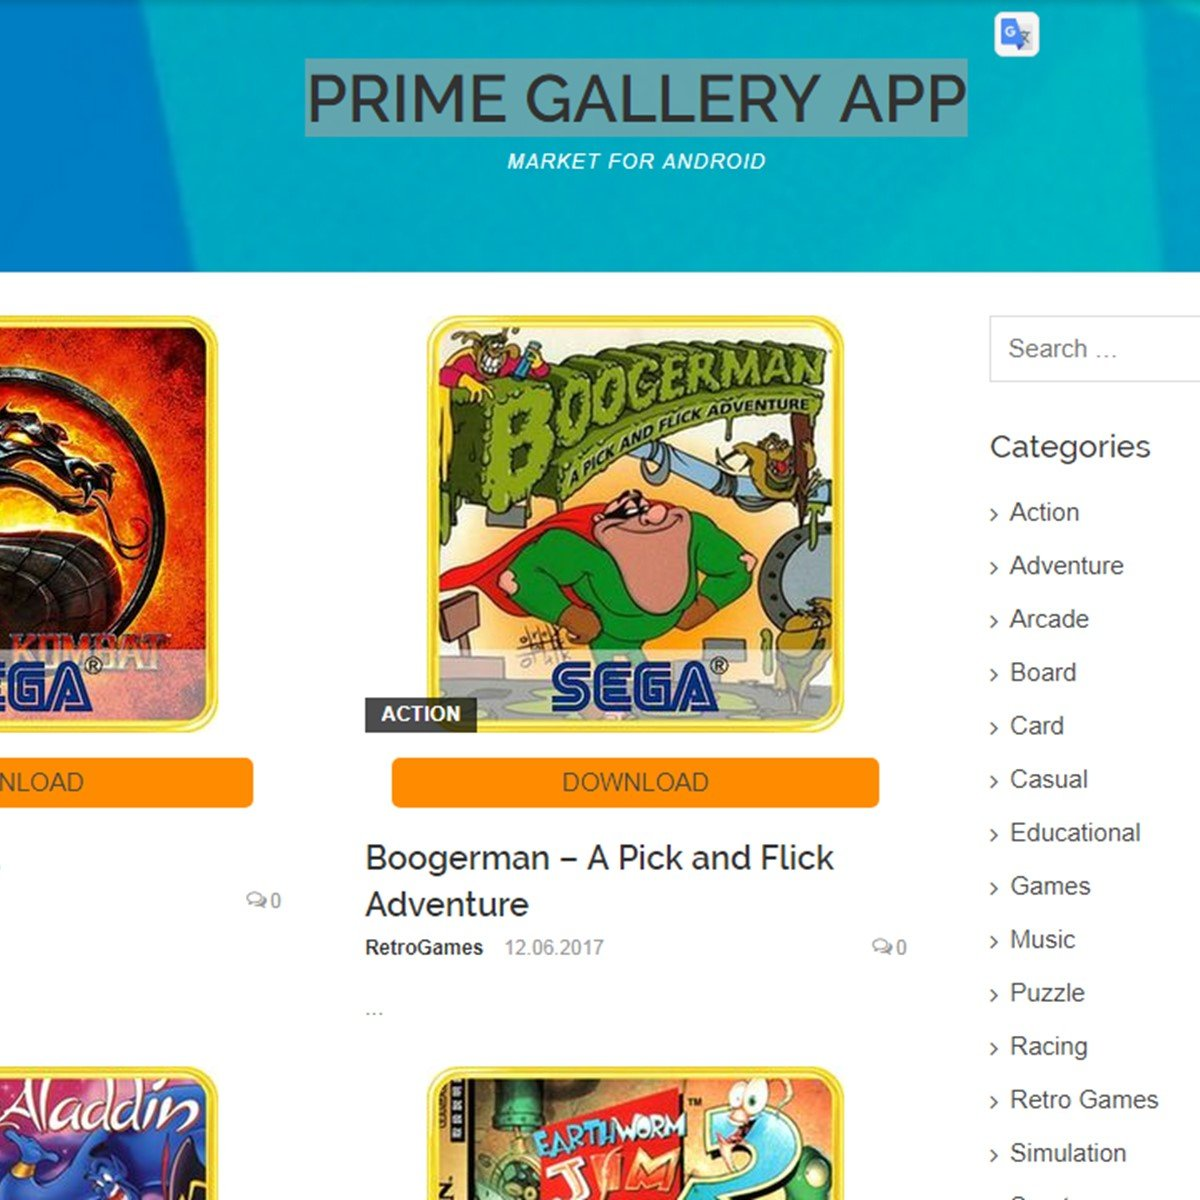 PRIME GALLERY APP Alternatives and Similar Games